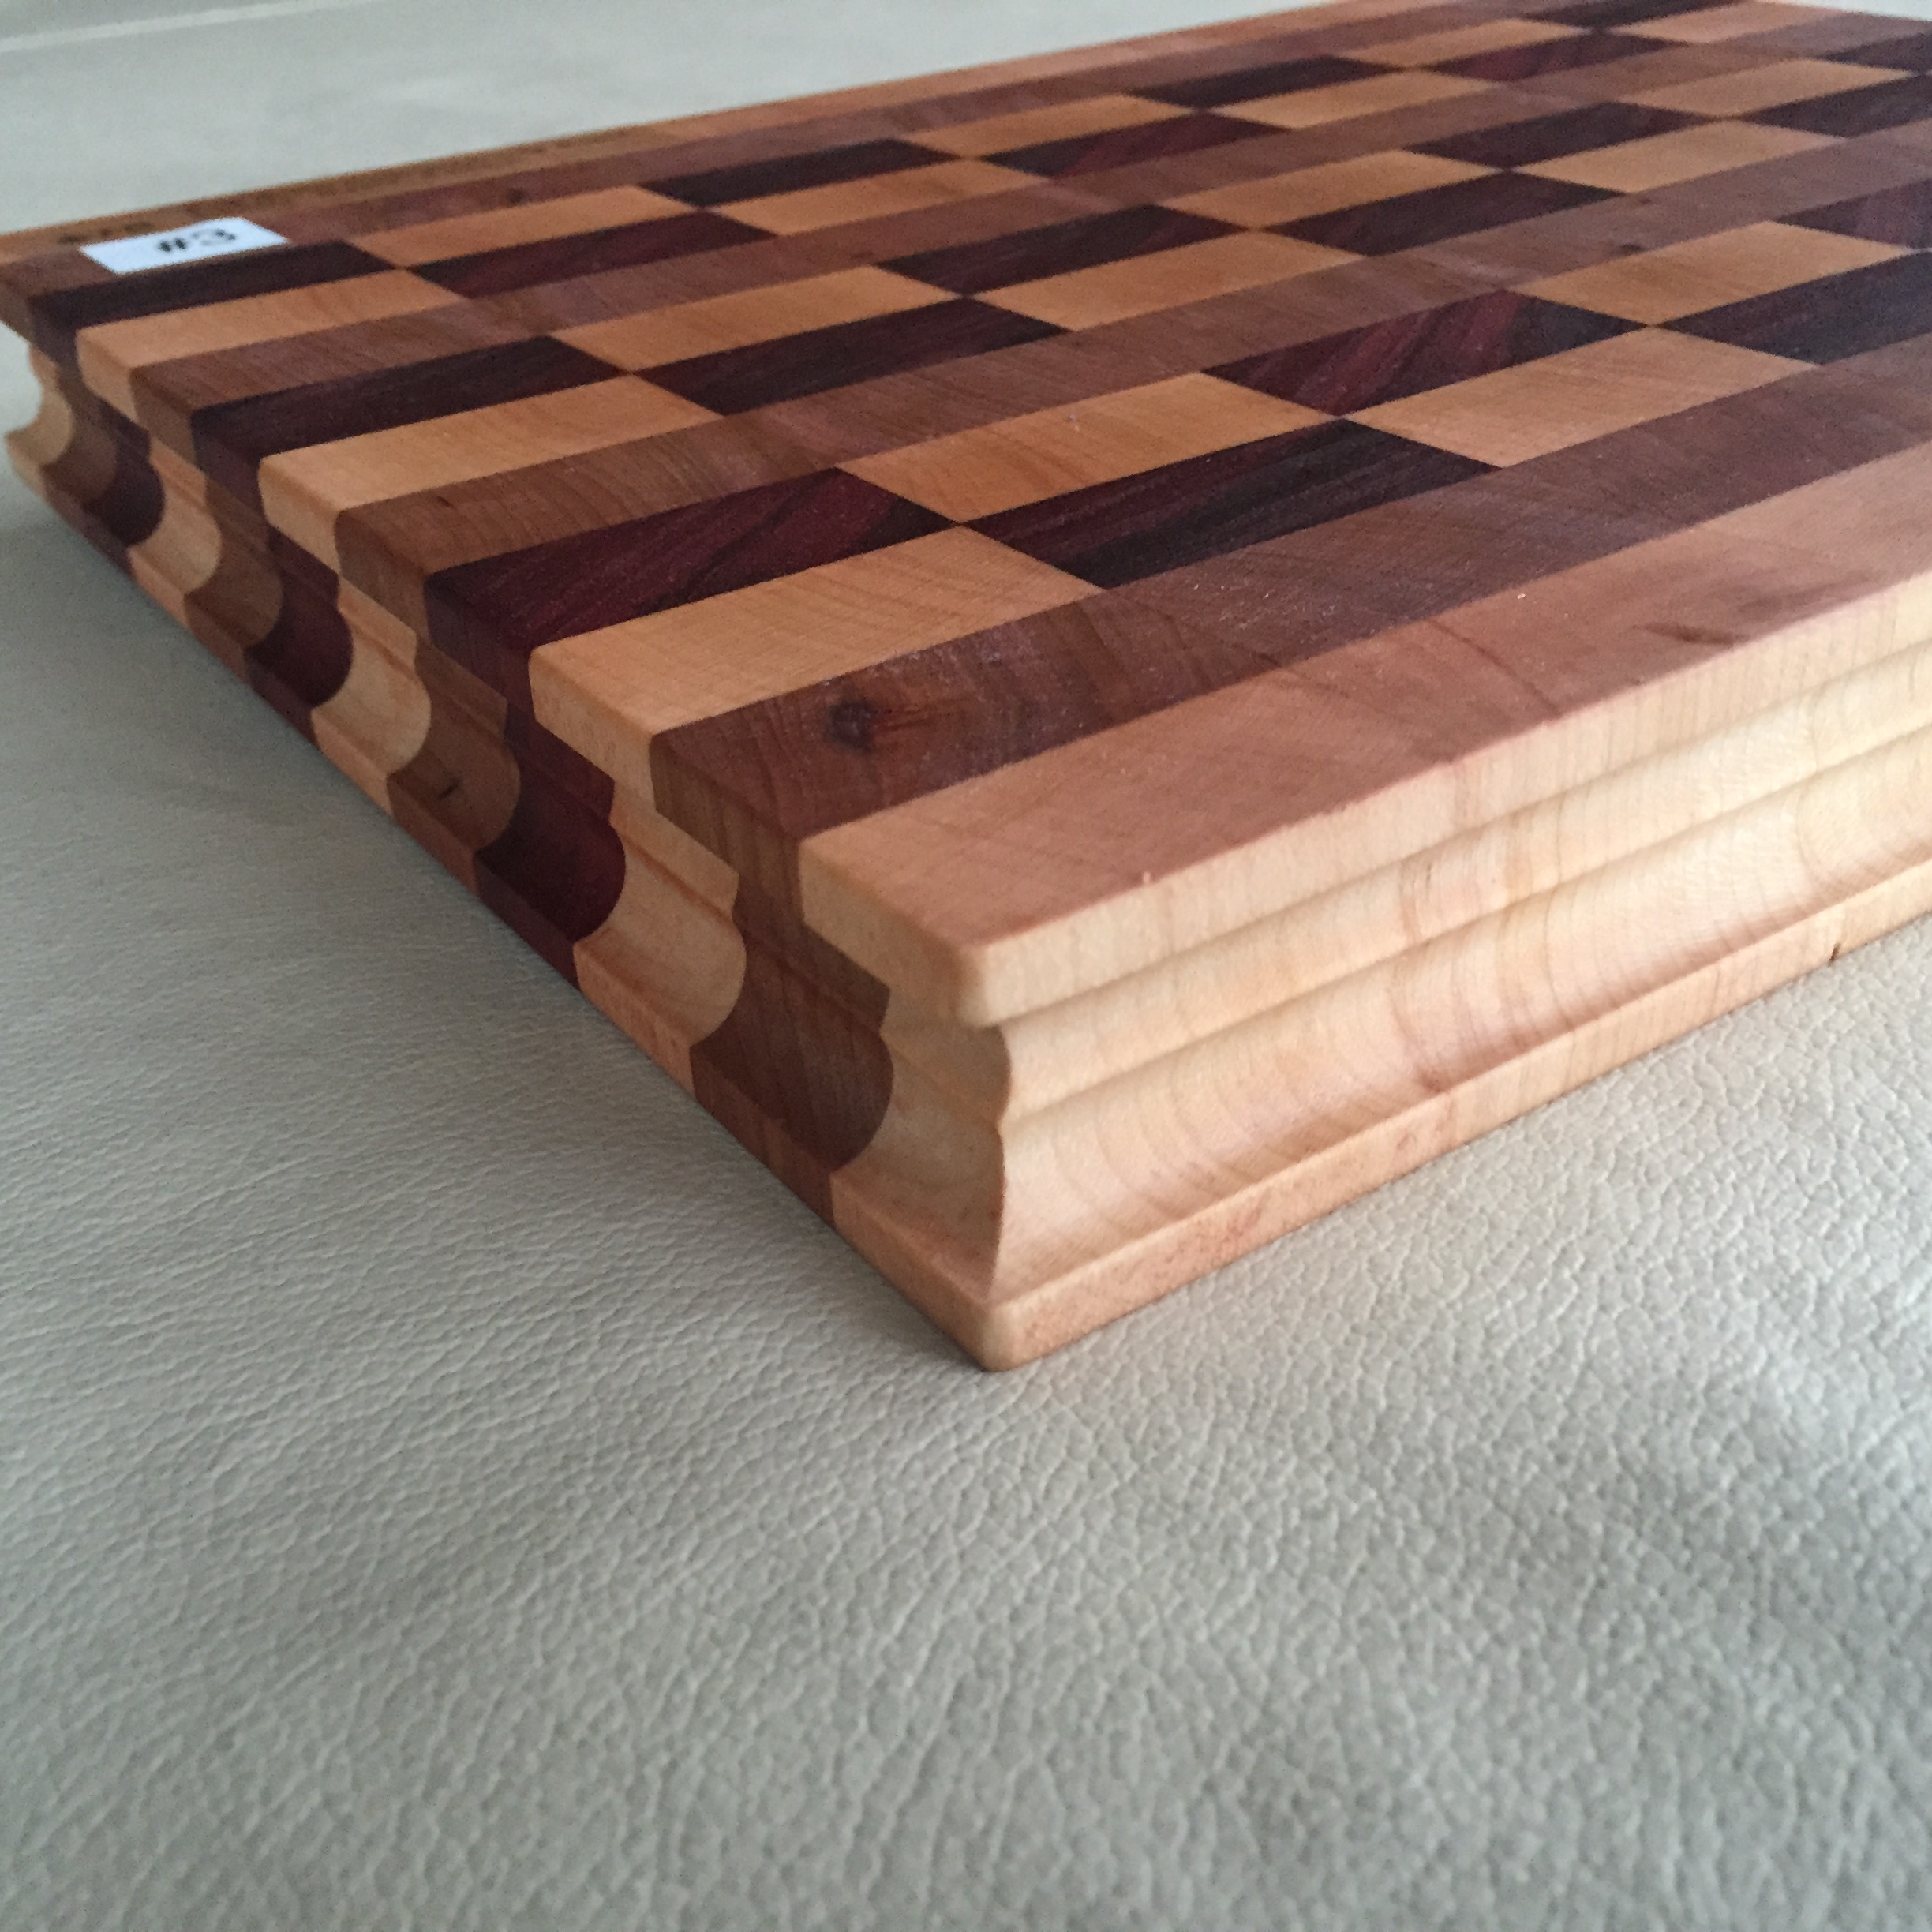 Rectangular serving/cutting board